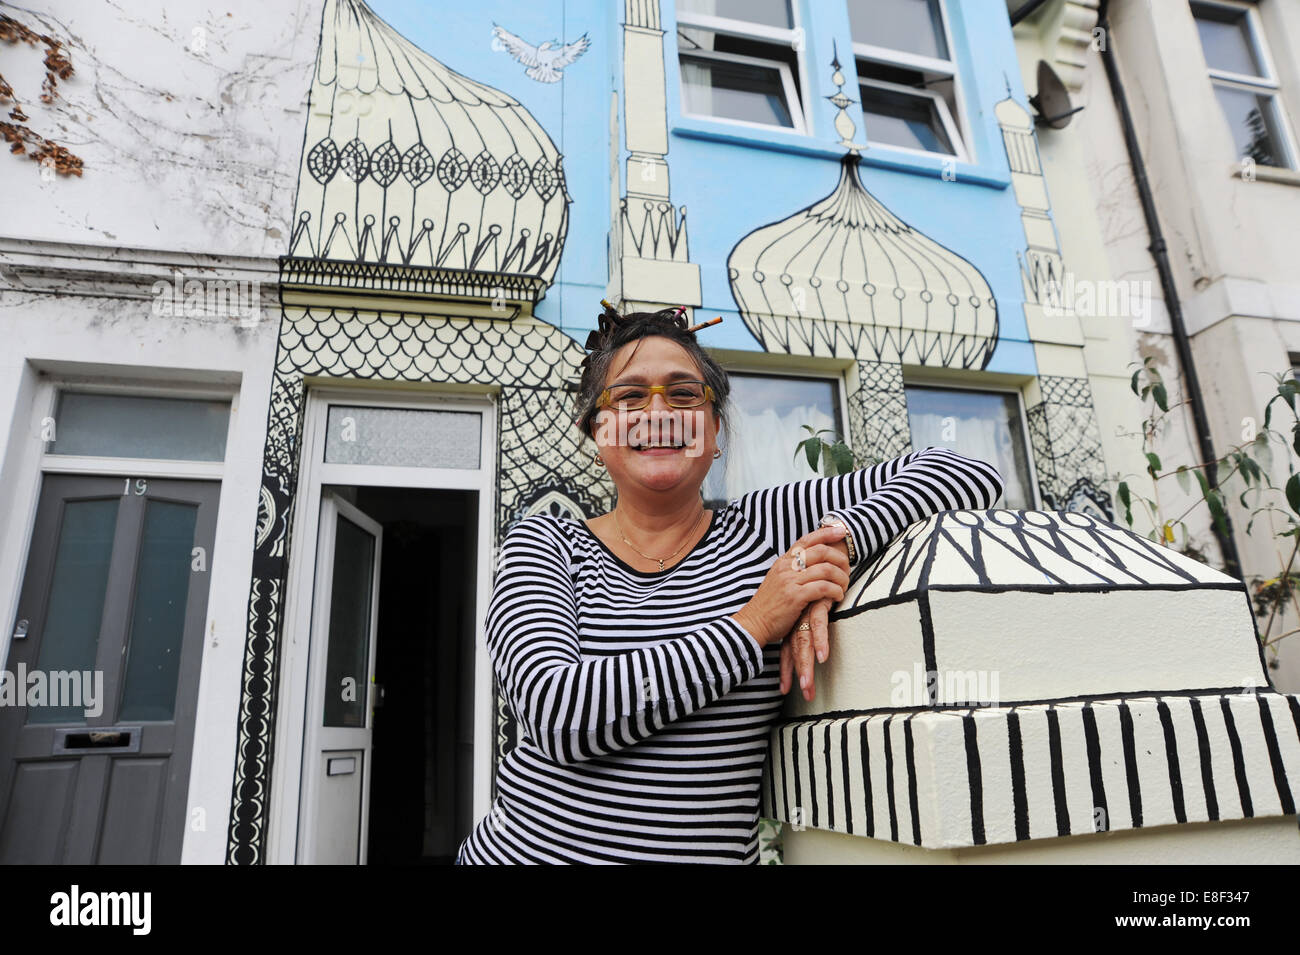 Brighton UK 3 October 2014 - Artist Kaye Teale  brightened up her house in Brighton by painting a mural of Royal Stock Photo